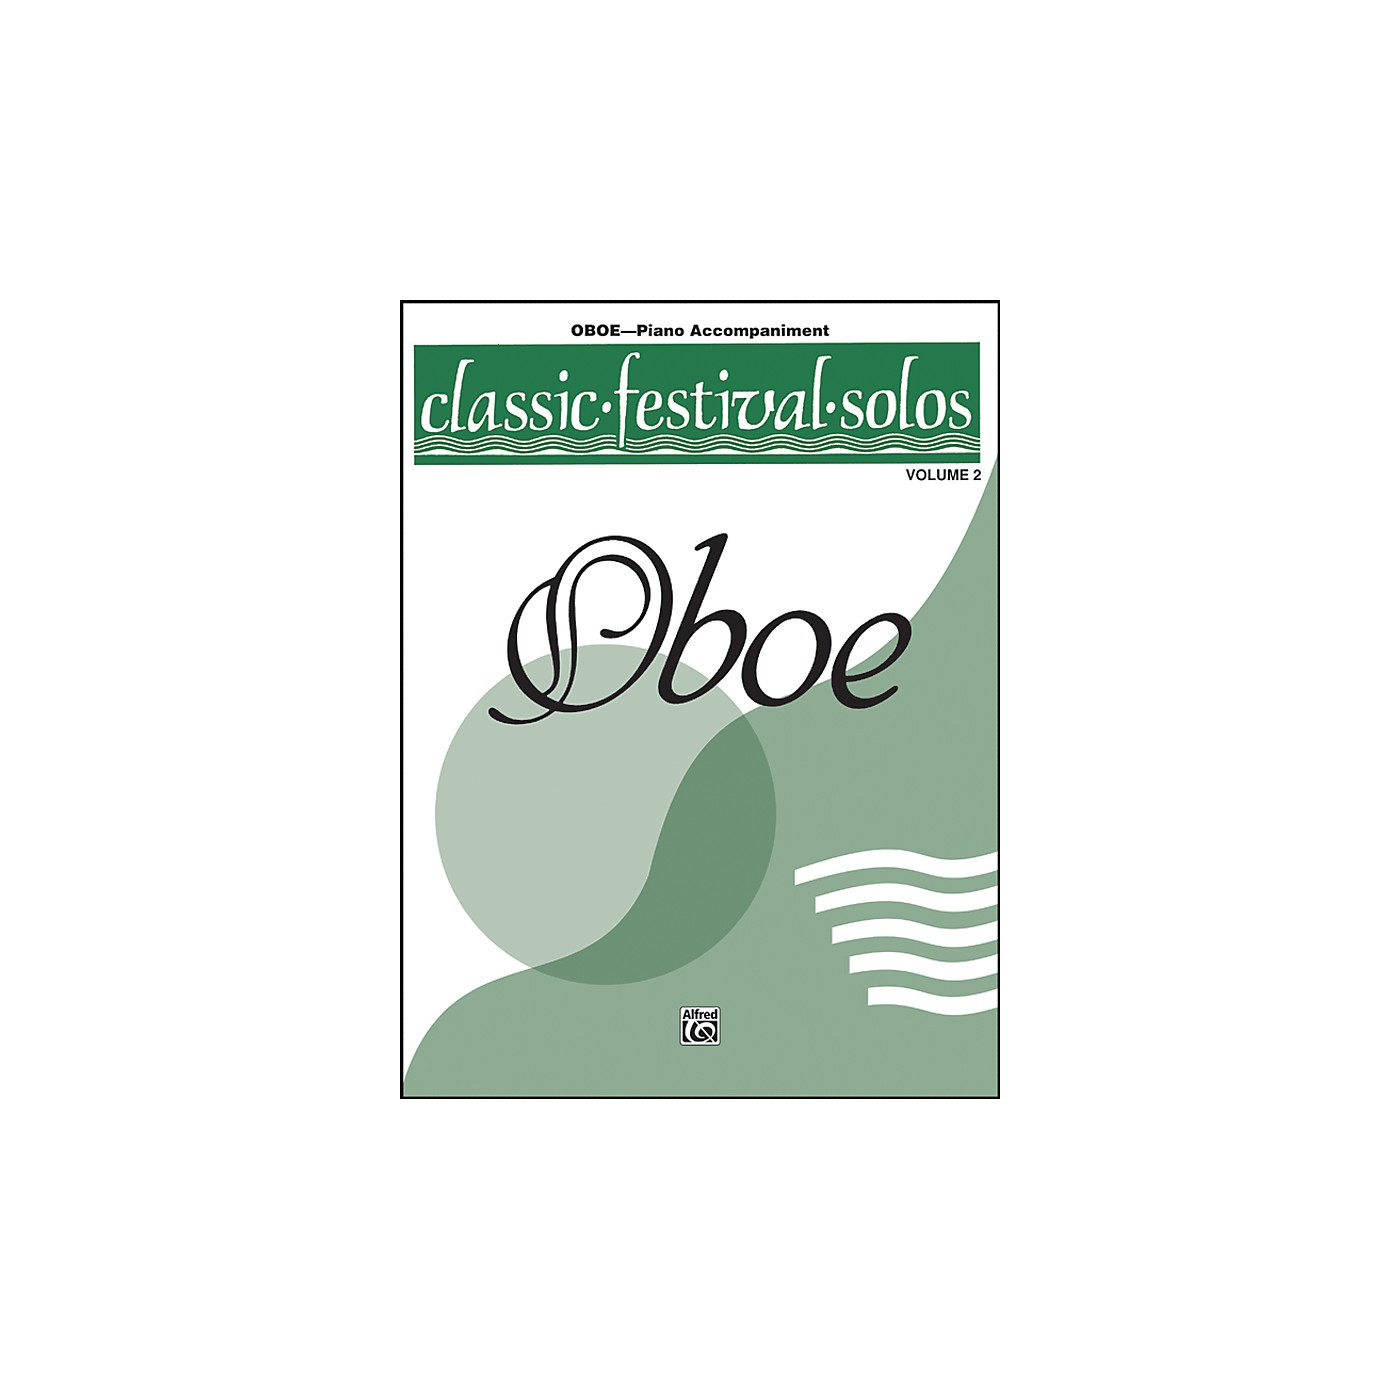 Alfred Classic Festival Solos for Oboe, Volume II Piano Acc. Book thumbnail